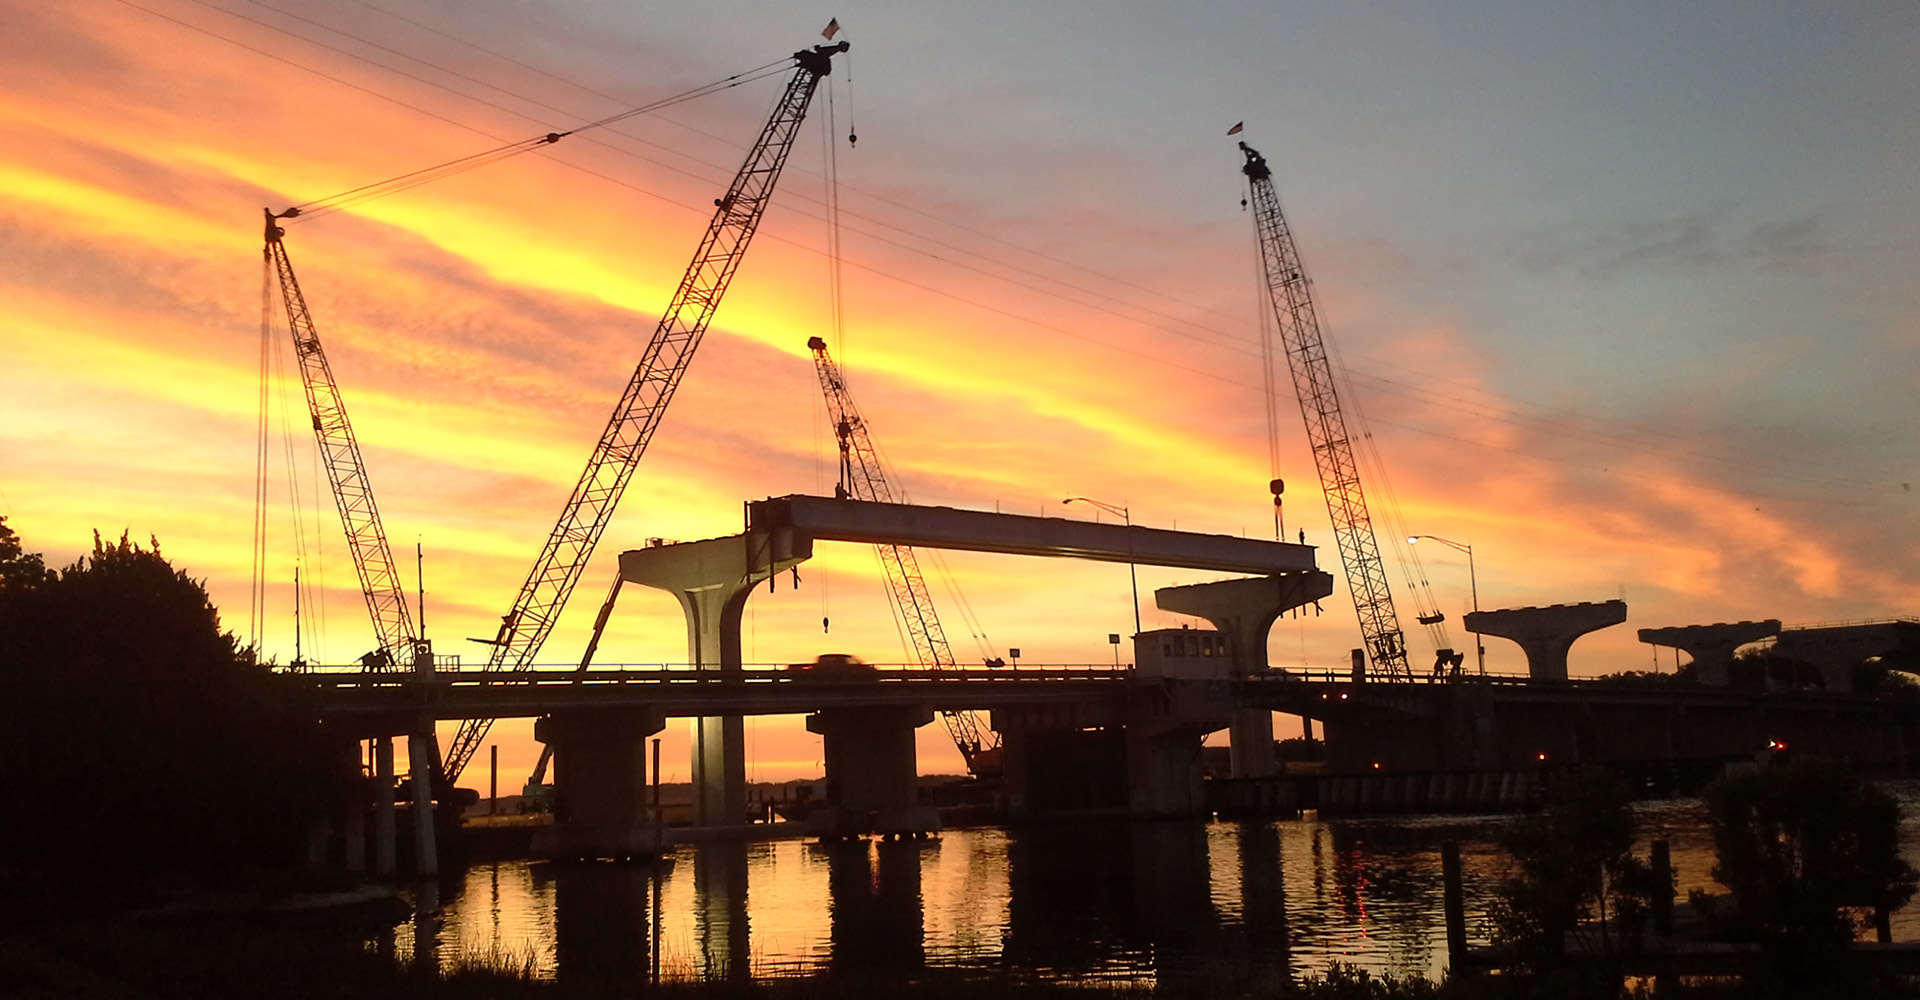 SR 105 Bridge Replacement construction silhouette at sunset.